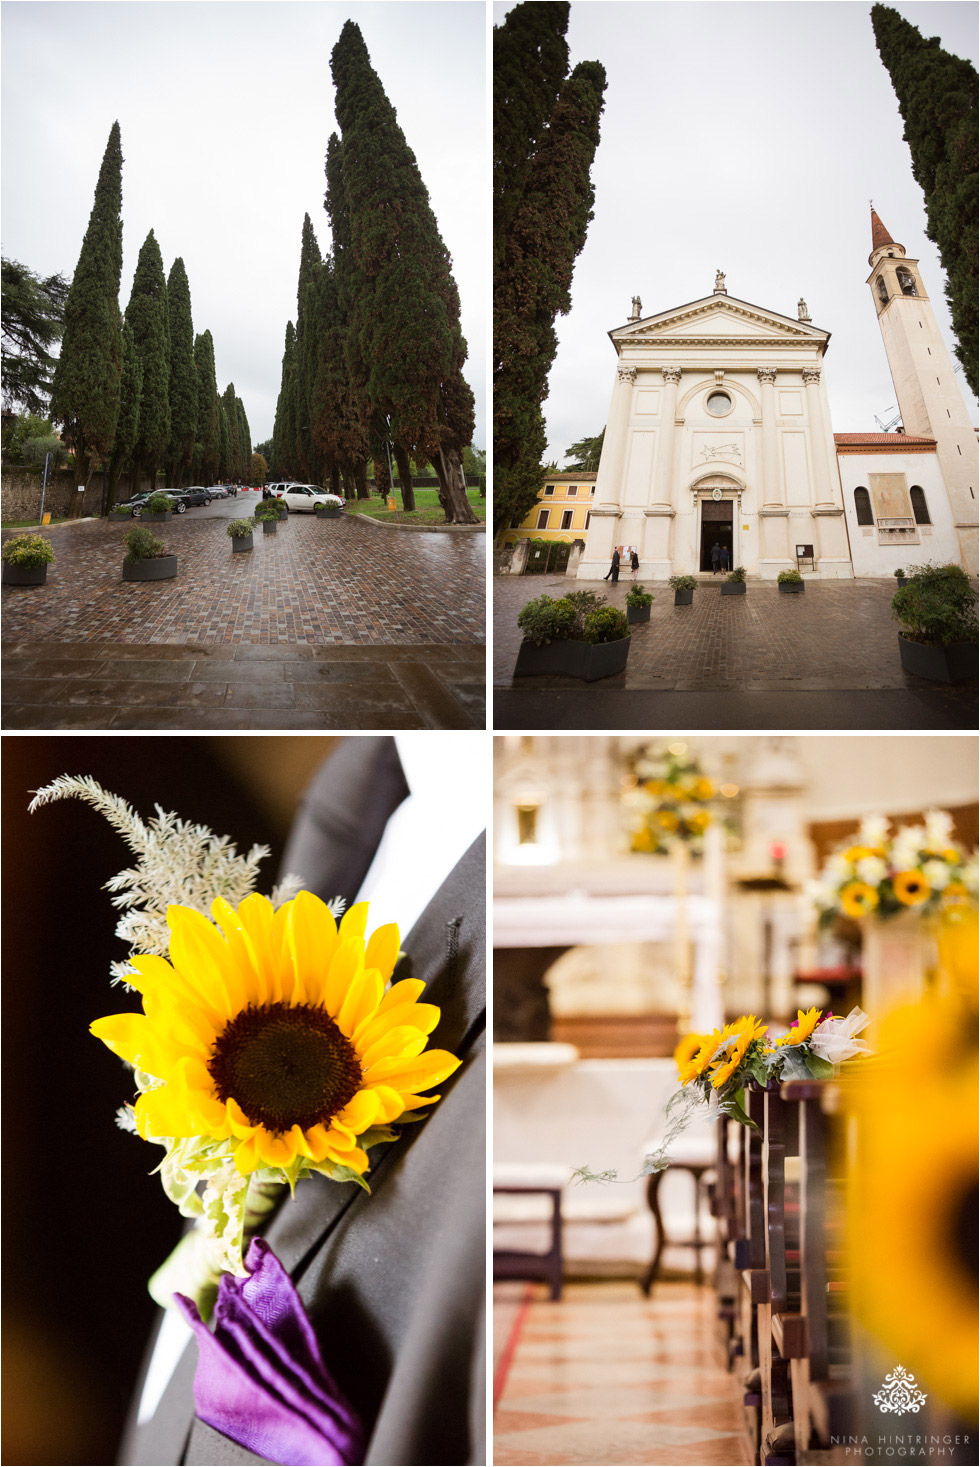 Church and floral arrangements at SS. Trinita in Bassano, the church where several family members have also gotten married  - Blog of Nina Hintringer Photography - Wedding Photography, Wedding Reportage and Destination Weddings